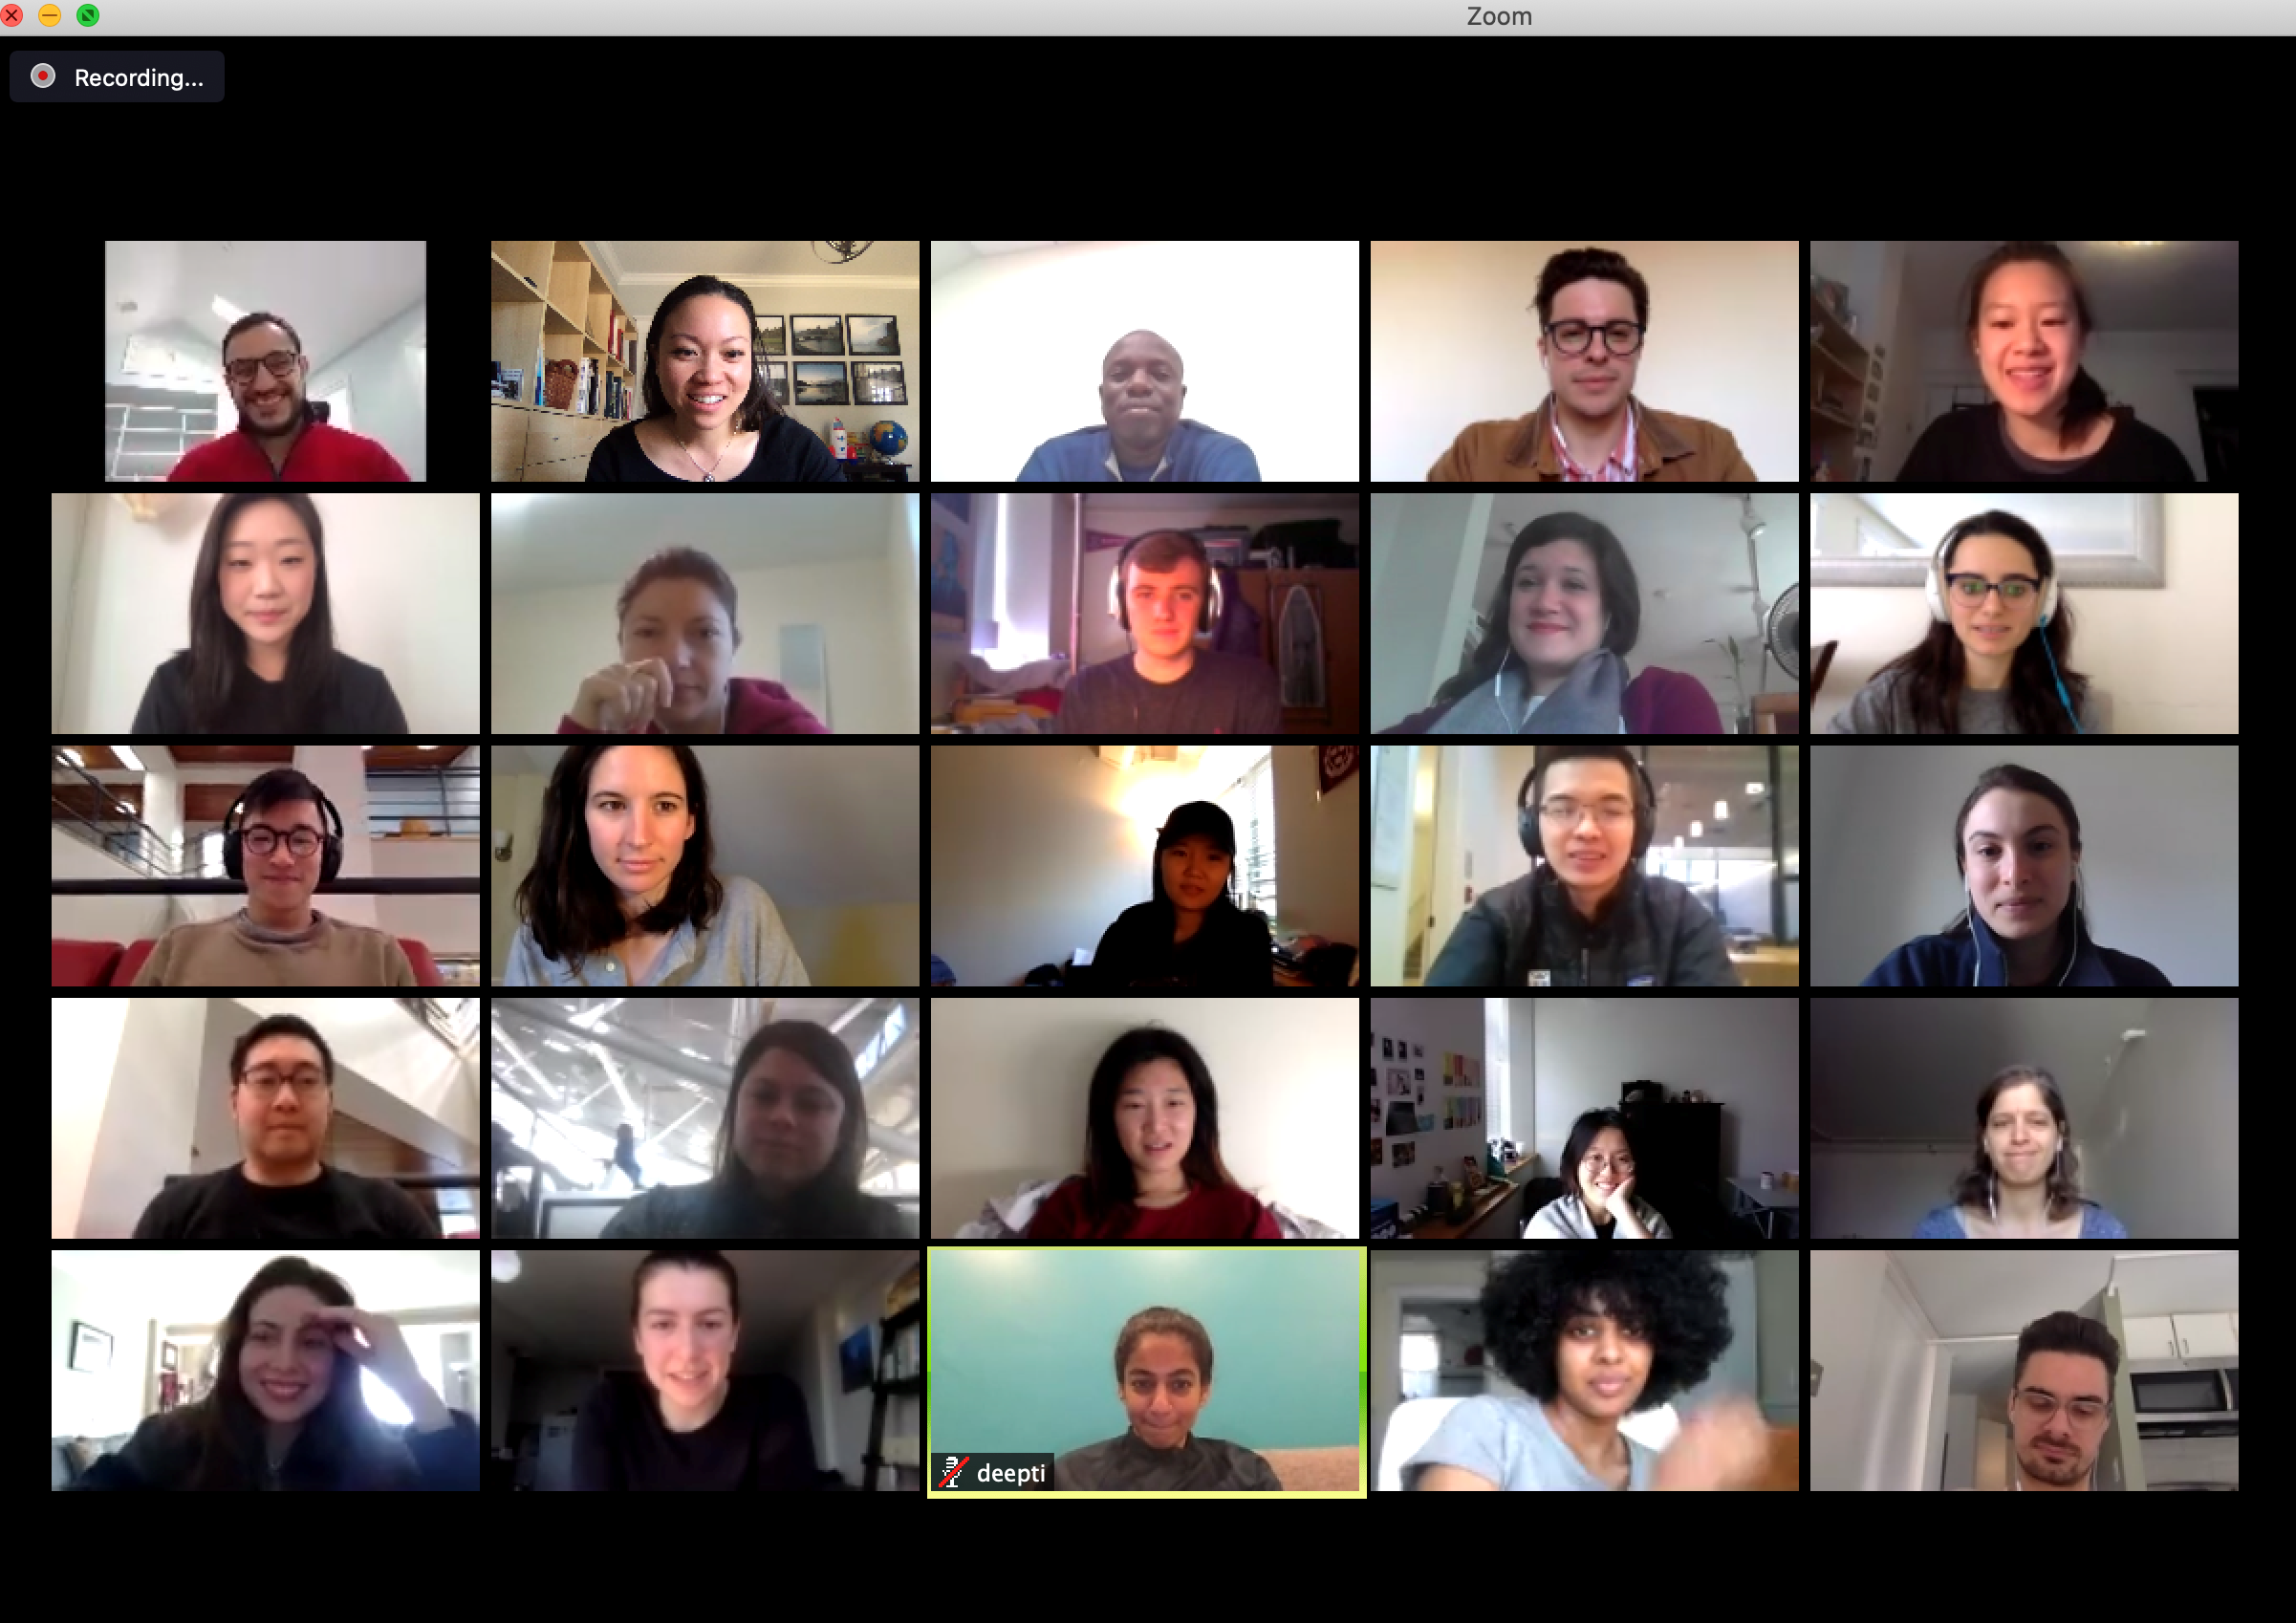 A screenshot of a Zoom call with 25 participants